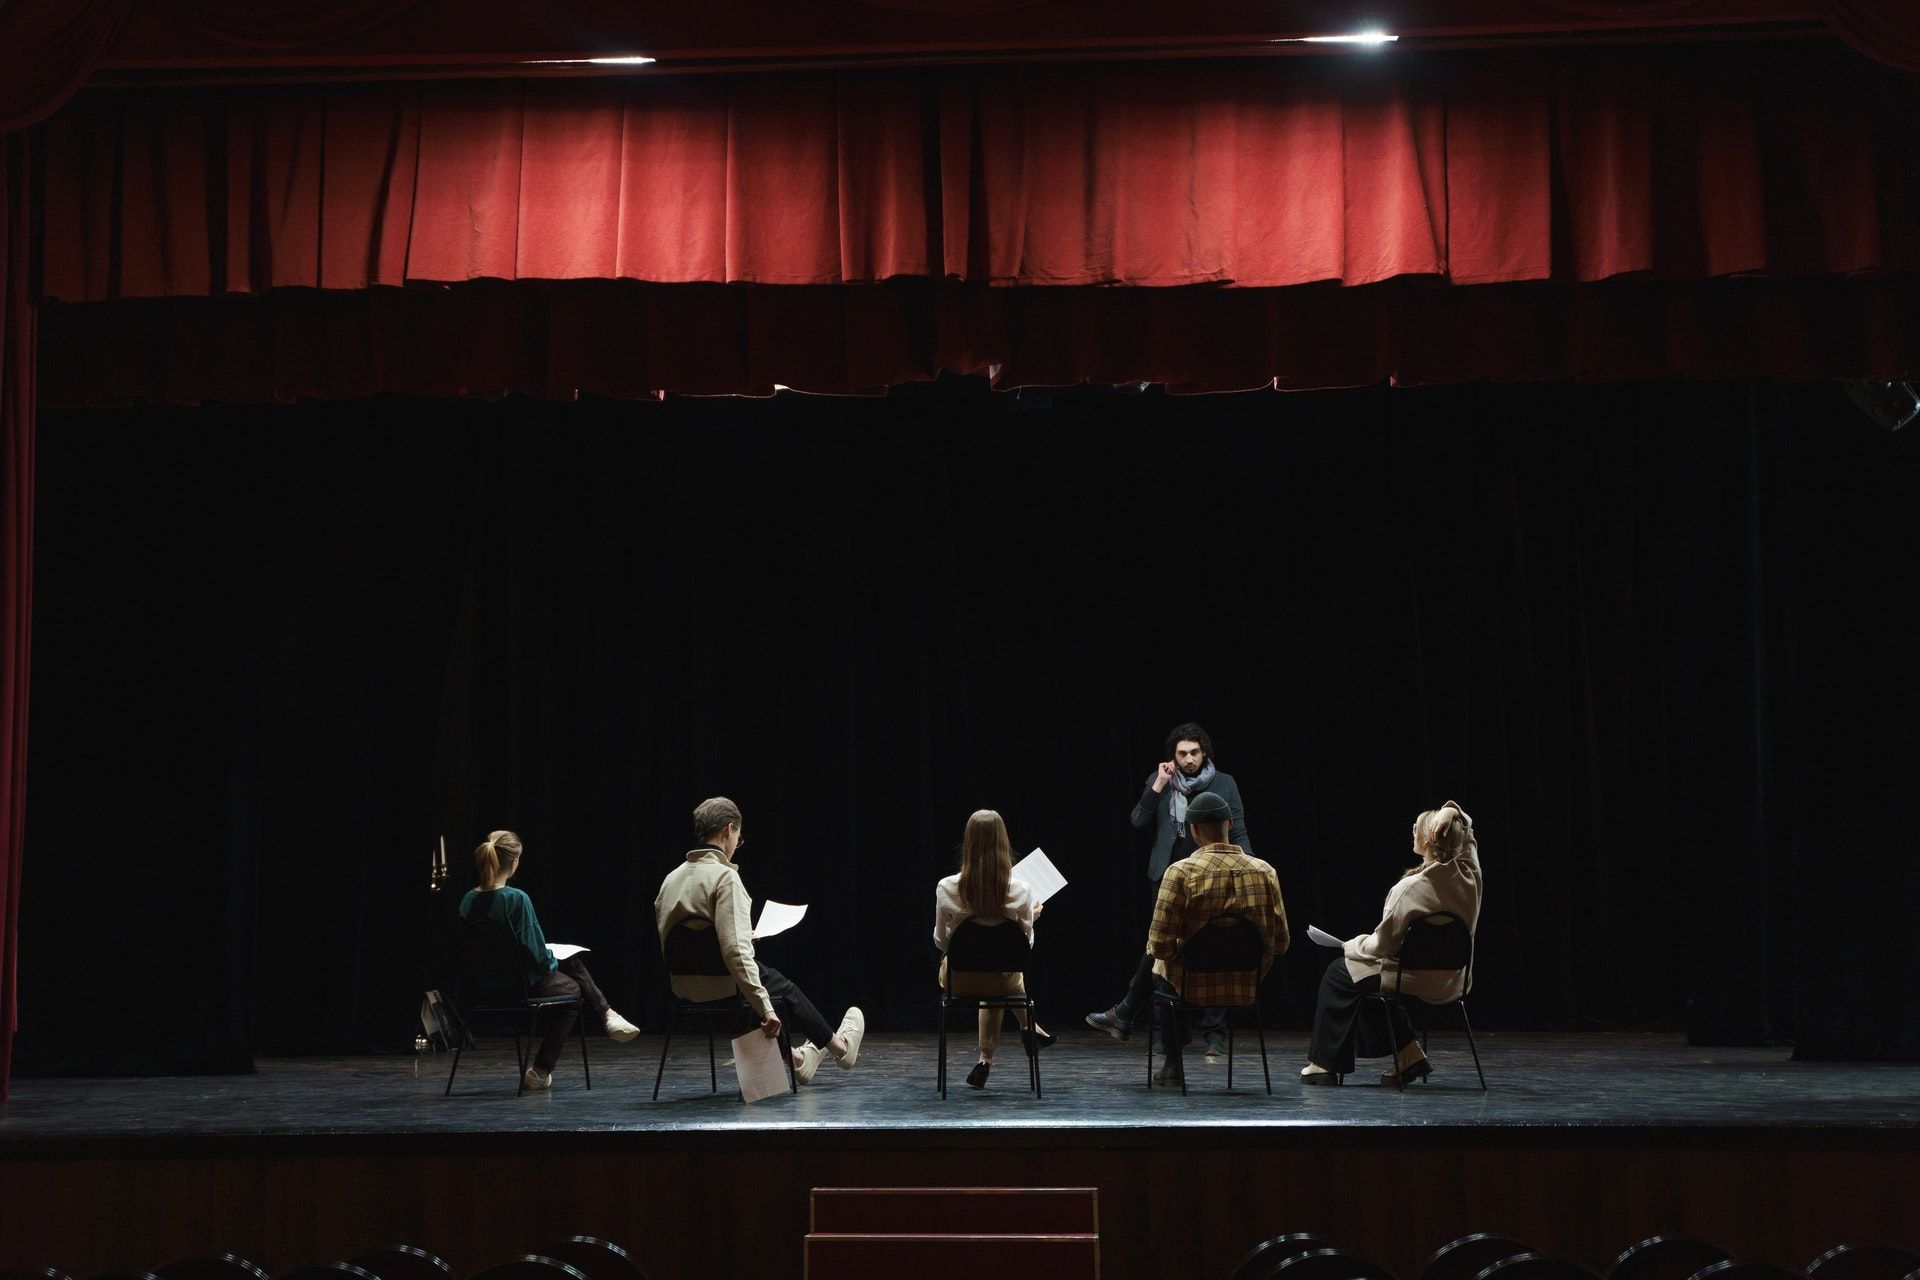 Actors reading a script on a theater stage